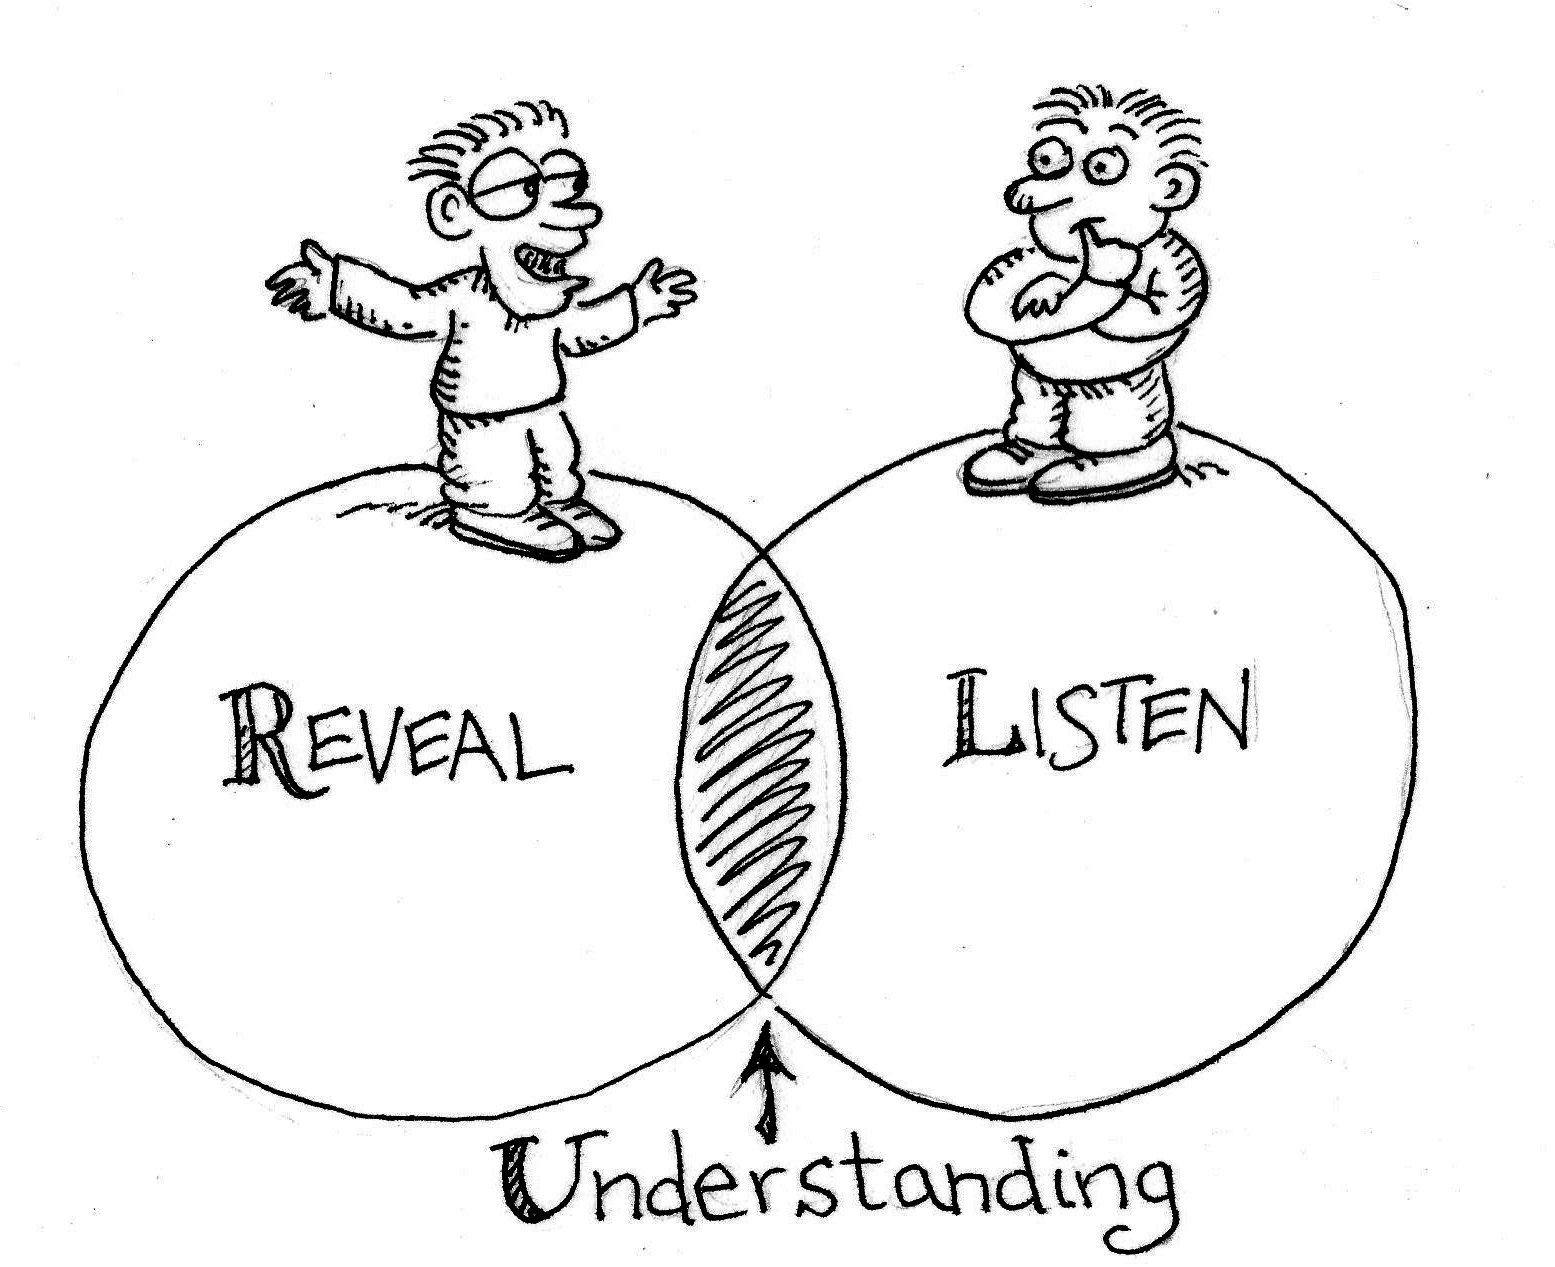 Understanding and acceptance means listening, even if you